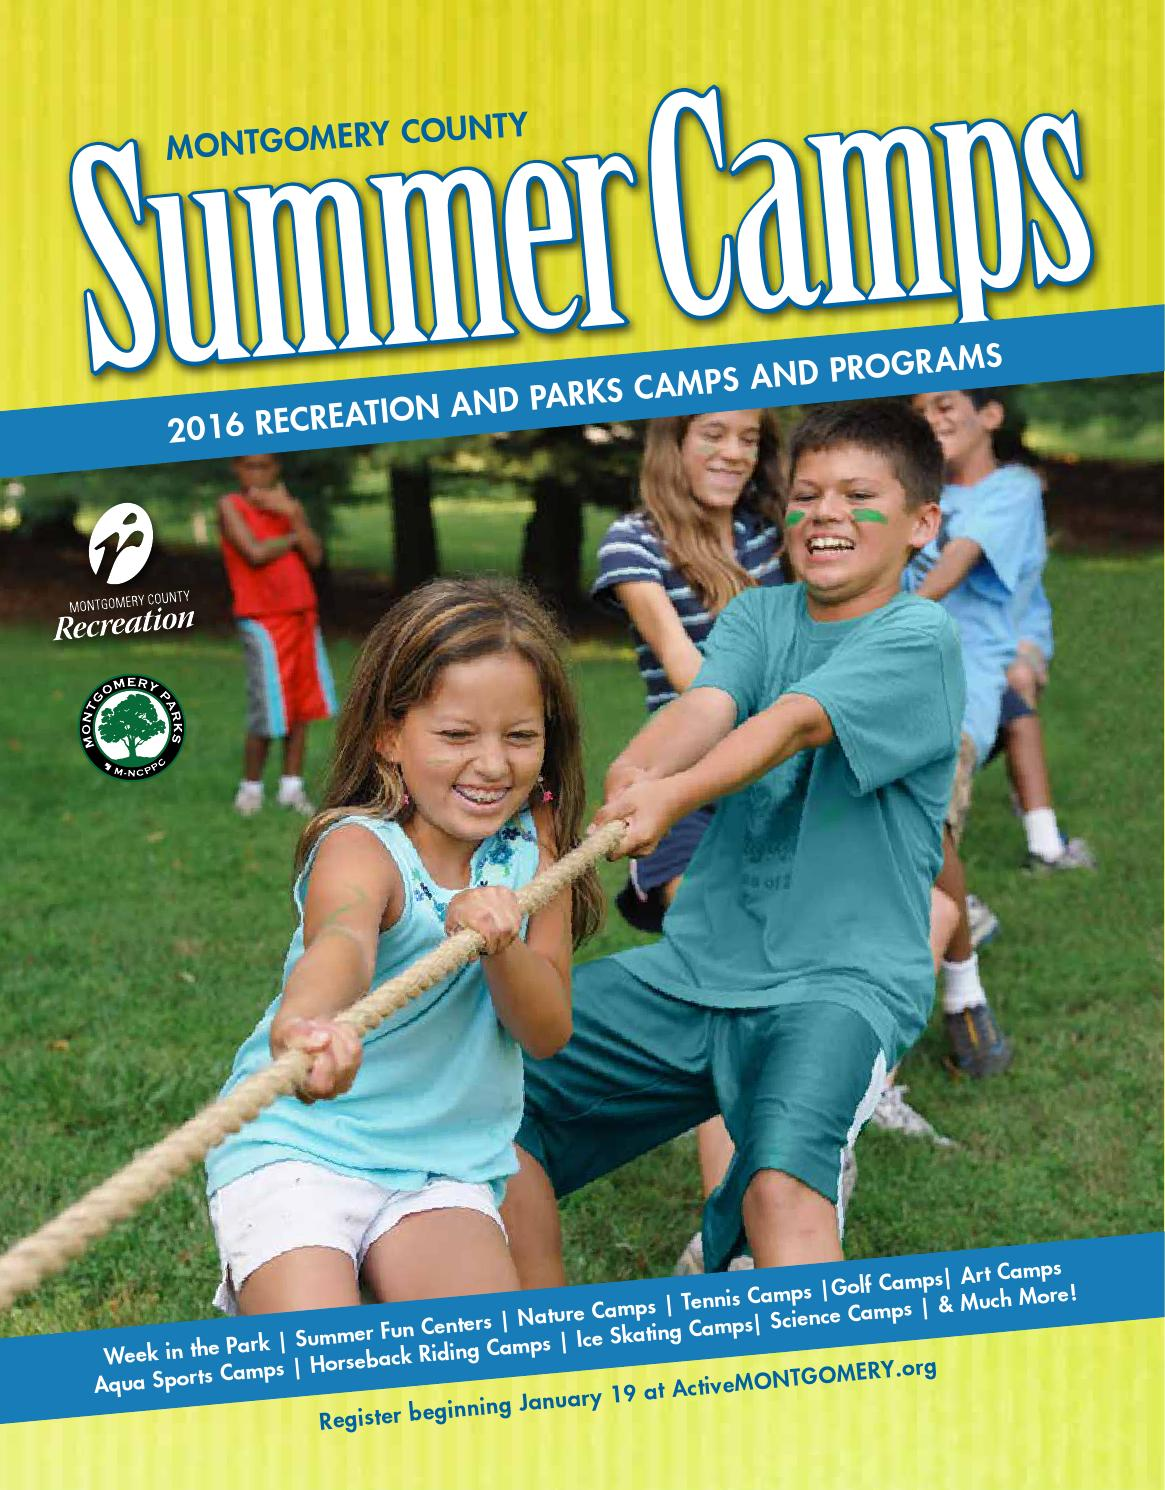 Summer Camps 2016 Guide by Montgomery County Recreation issuu